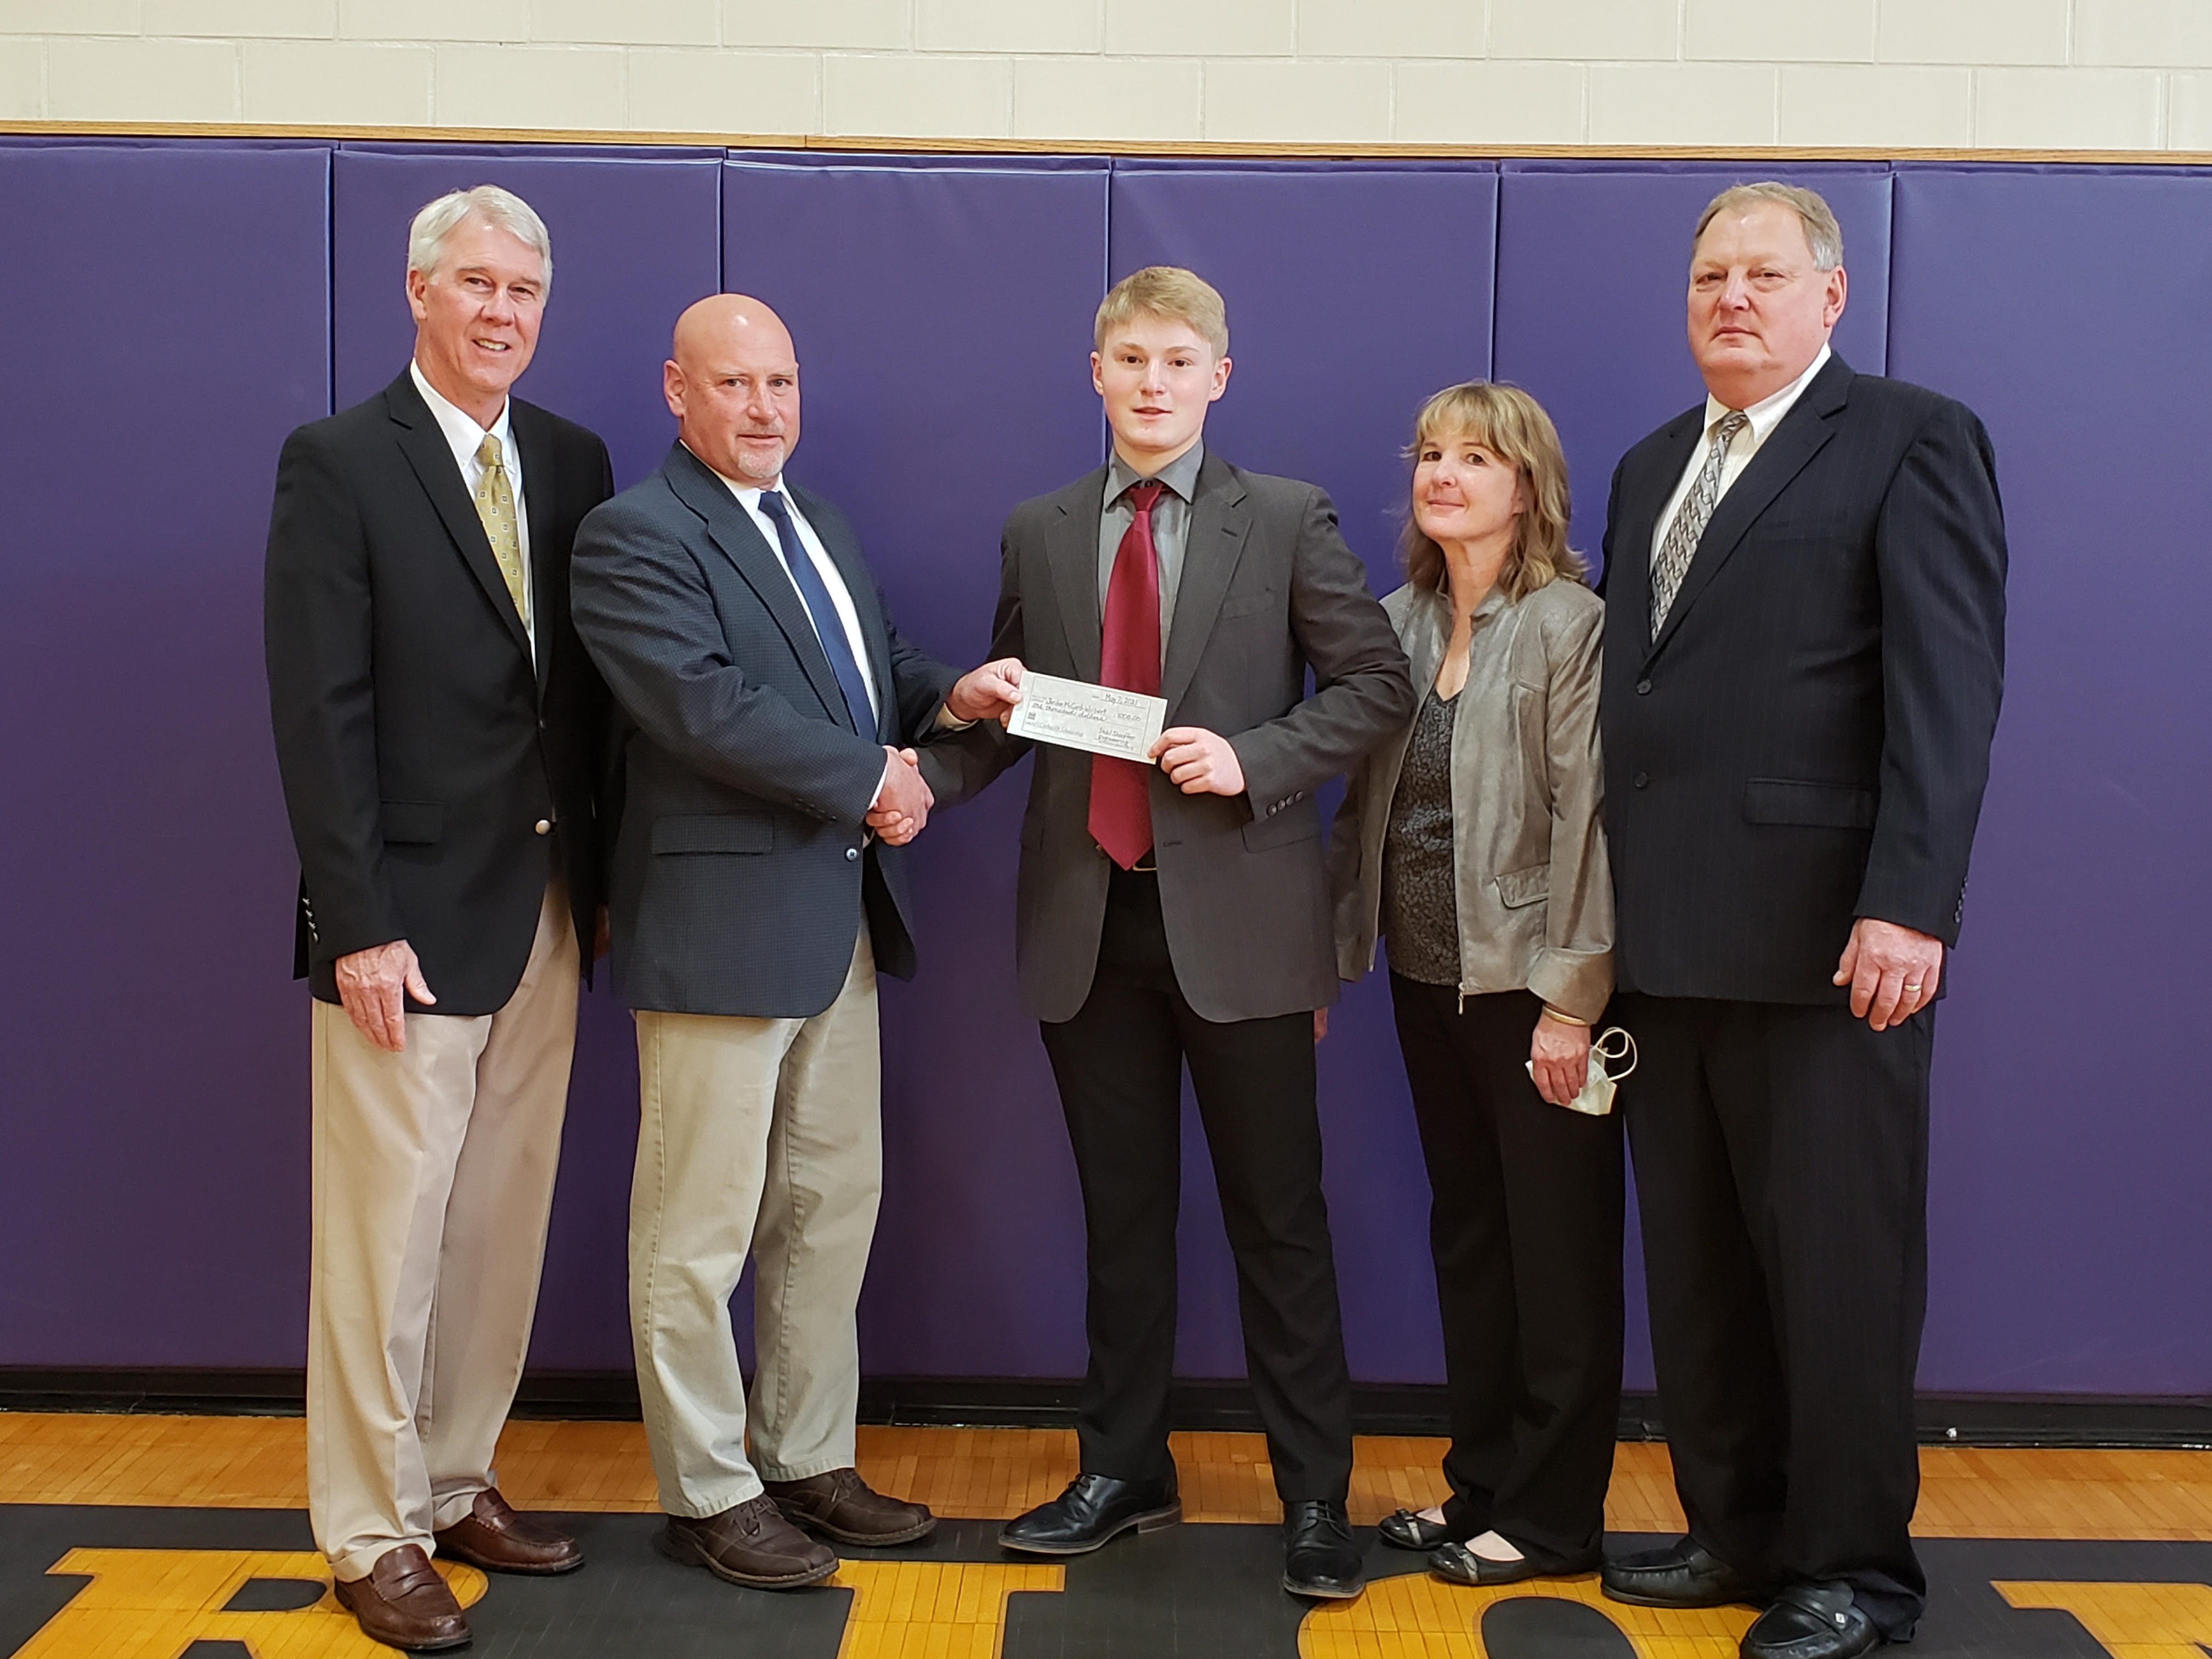 Jordan McCord-Wolbert, a senior at North Clarion, was recently awarded a scholarship from the National Football Foundation for his outstanding achievements in scholarship, leadership, and the sport of football.